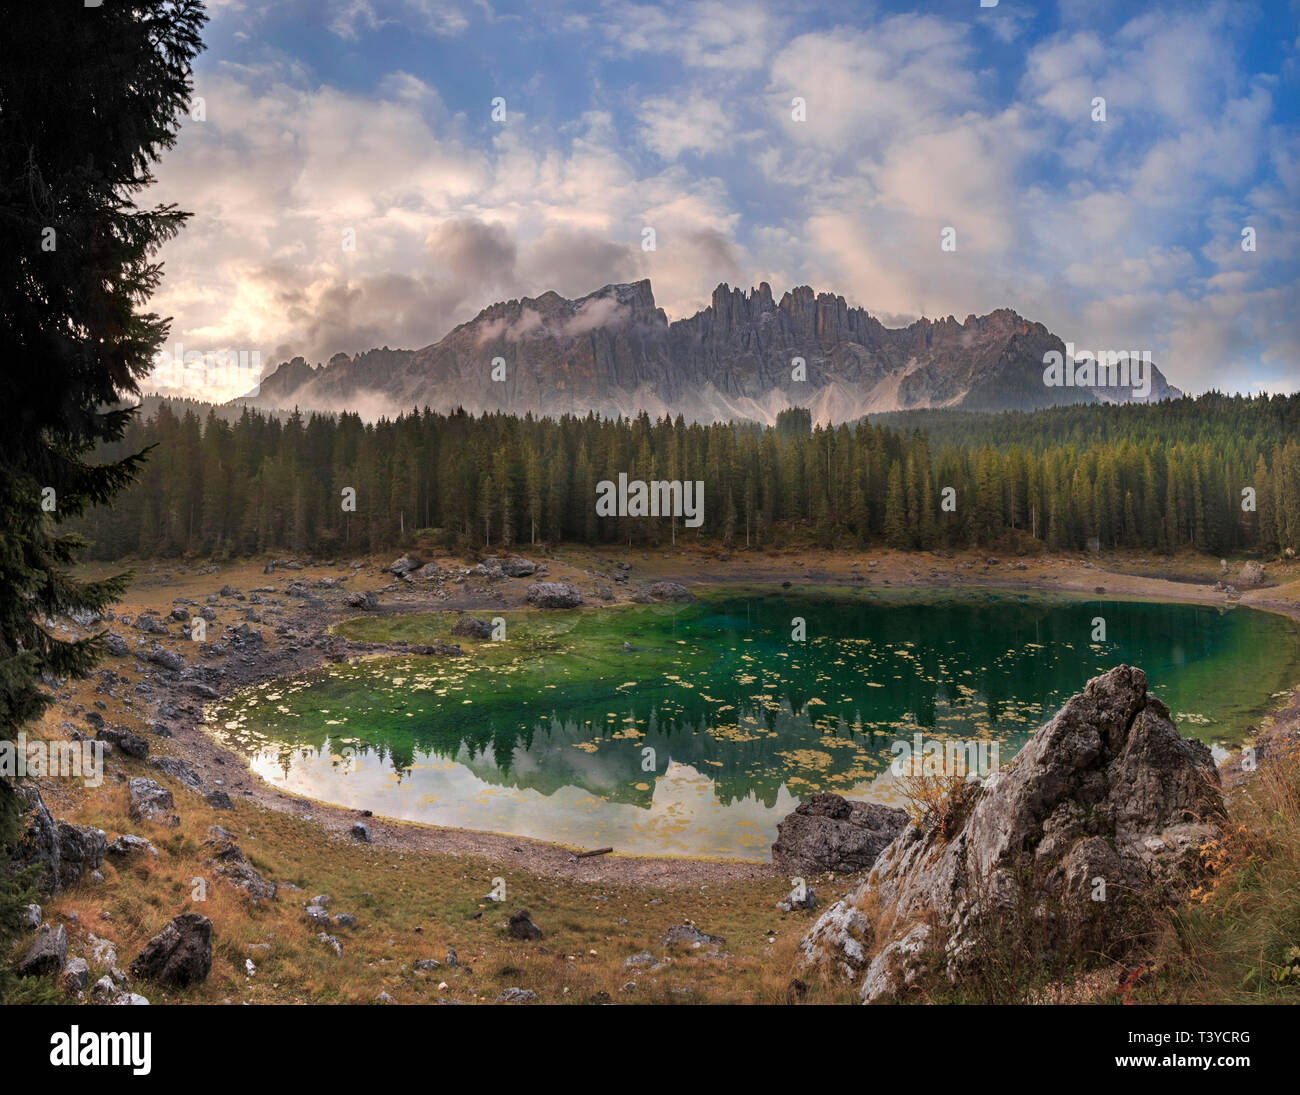 A gorgeous sunrise at the lake of Carezza, a wonderful lake surrounded by two of the most famous massifs  of the Italian Dolomites, the Catinaccio&Ros - Stock Image